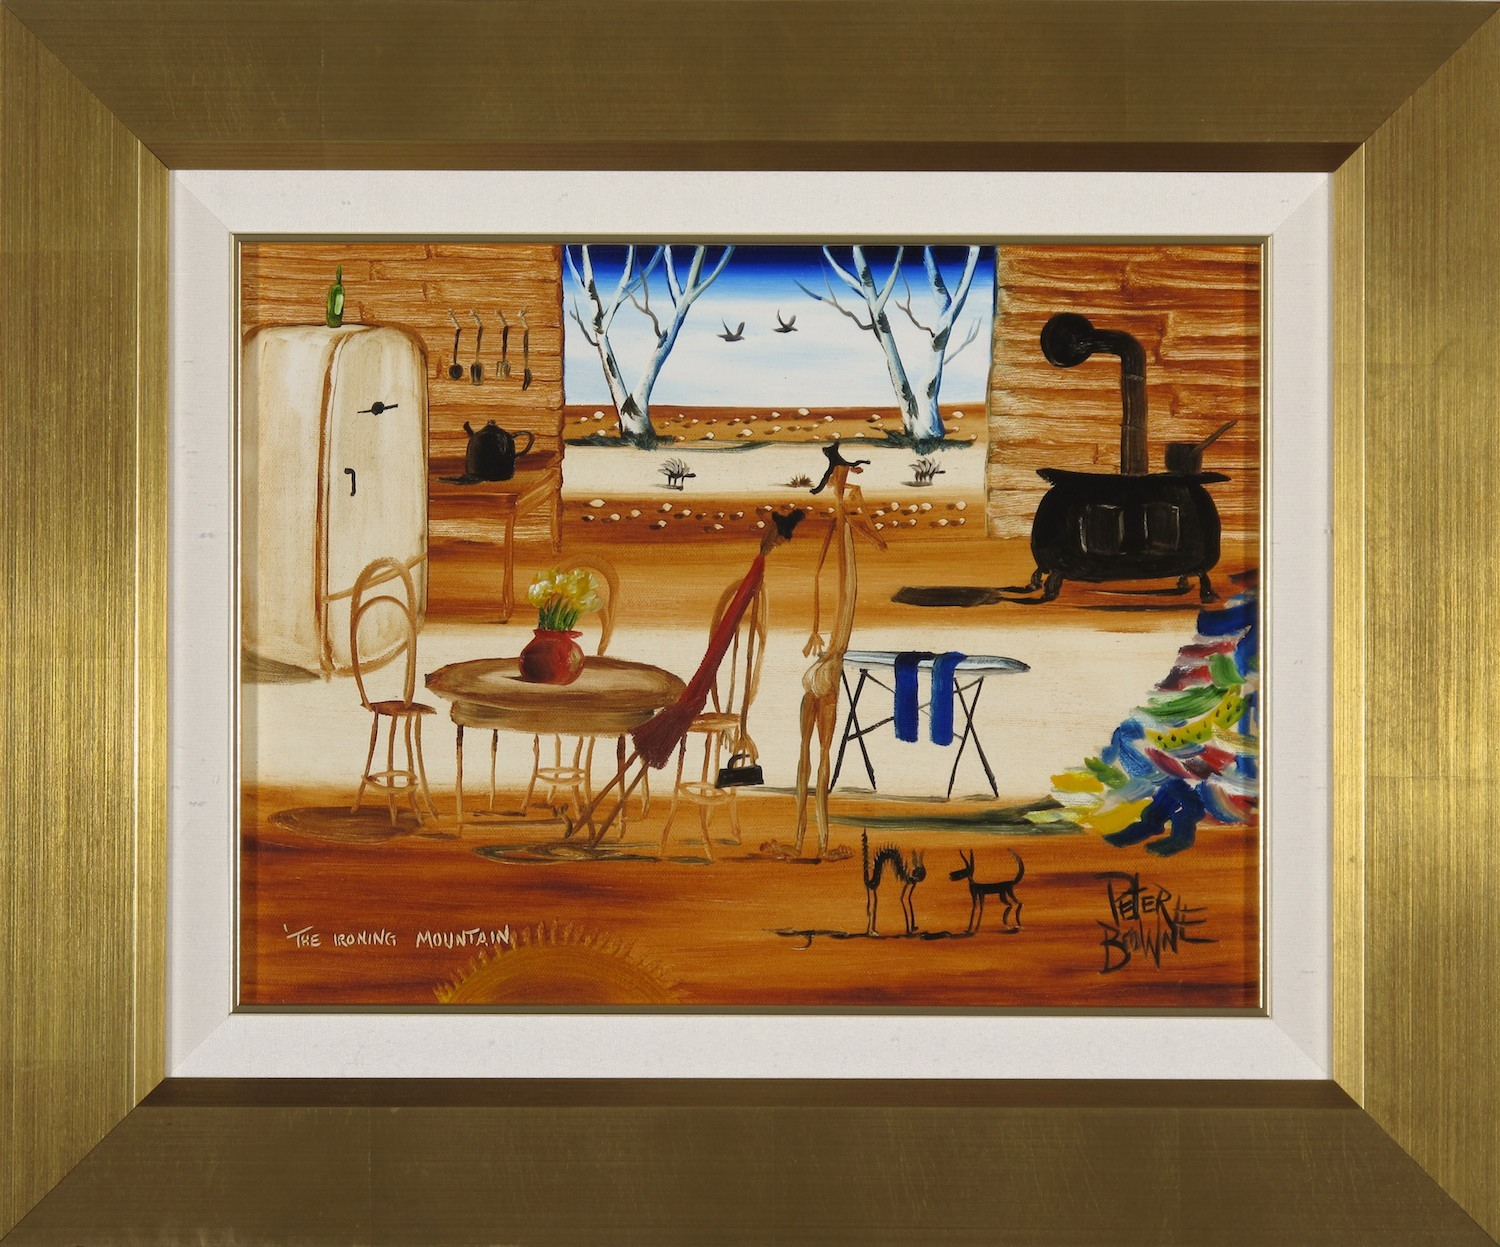 #10410. Peter Browne. The Ironing Mountain. 47cm x 57cm. $2800 Now $1400